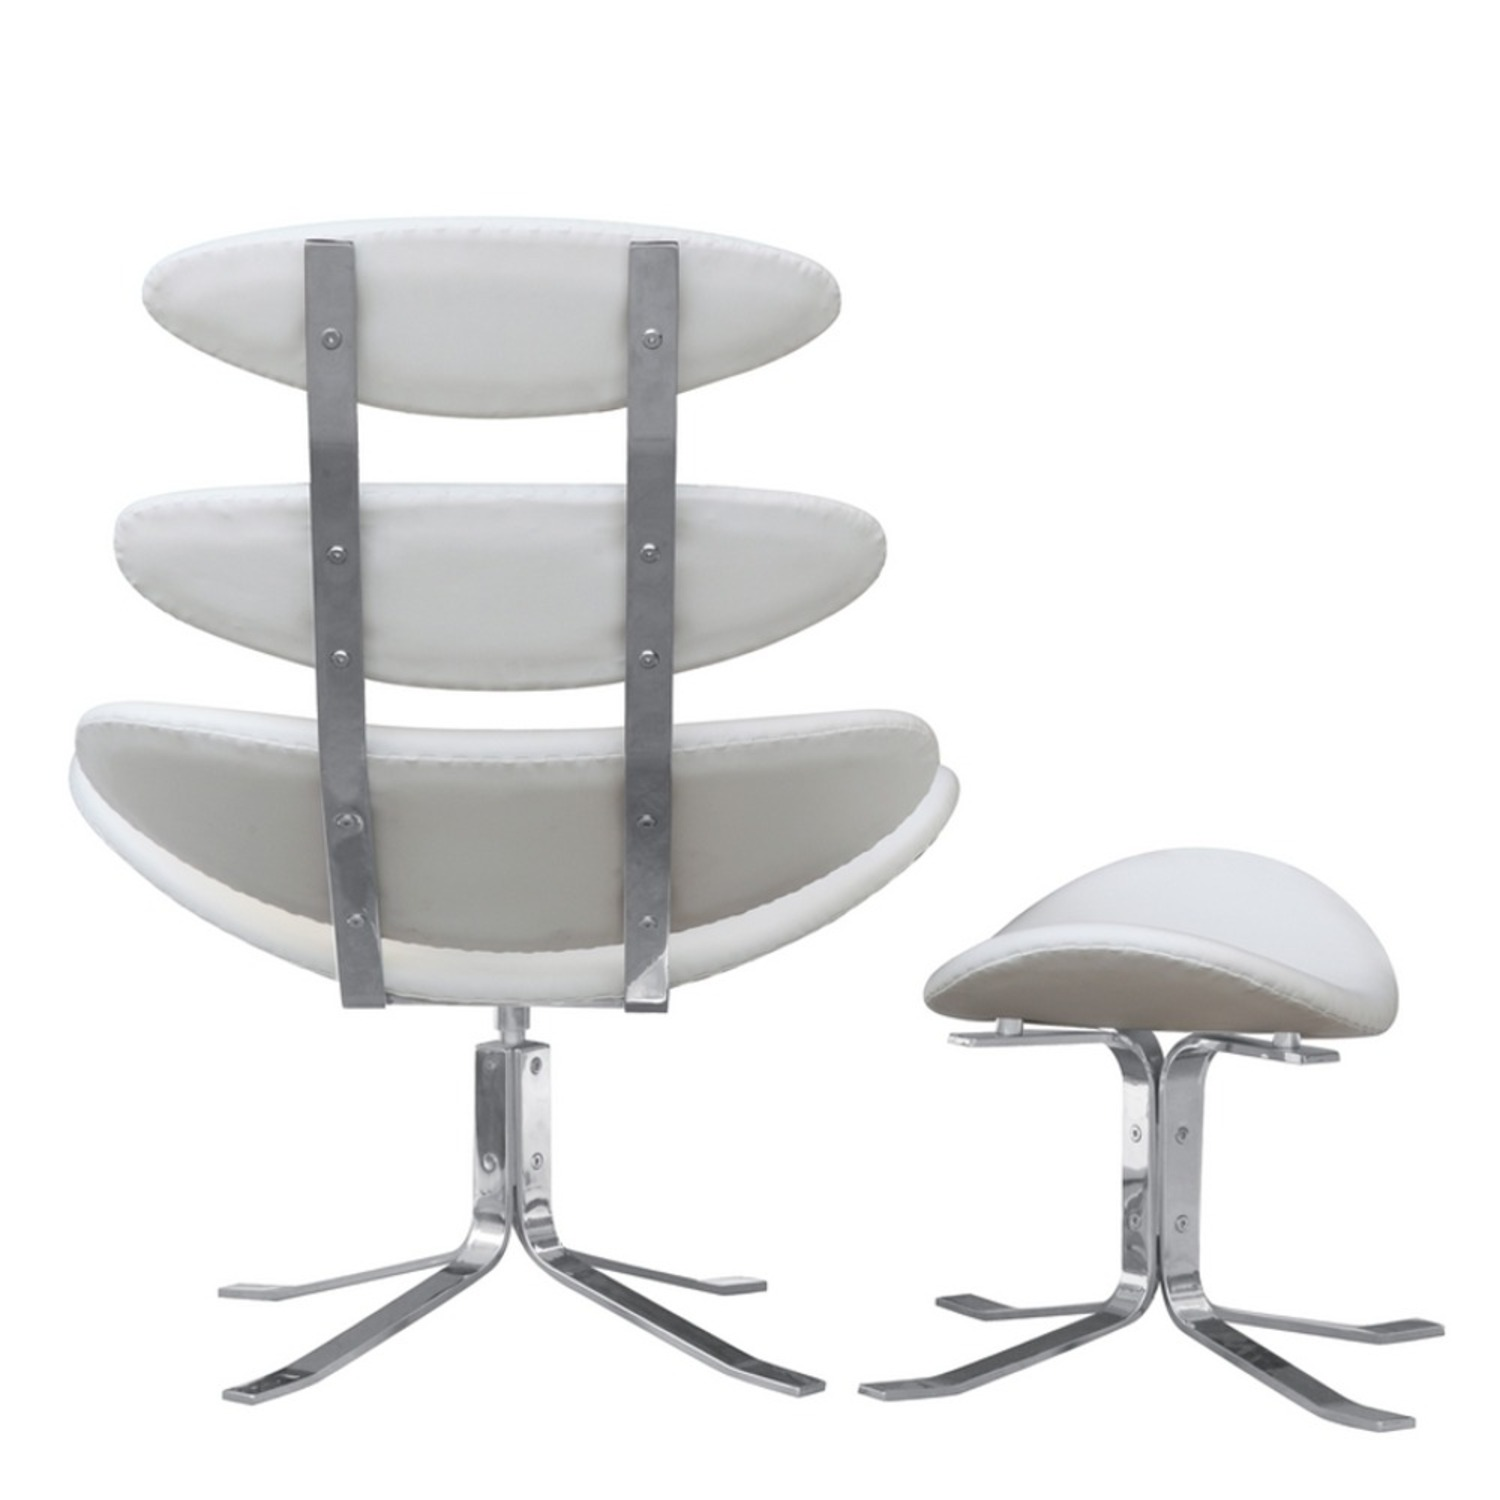 Chair & Ottoman In White Leather Sculptured Form - image-2